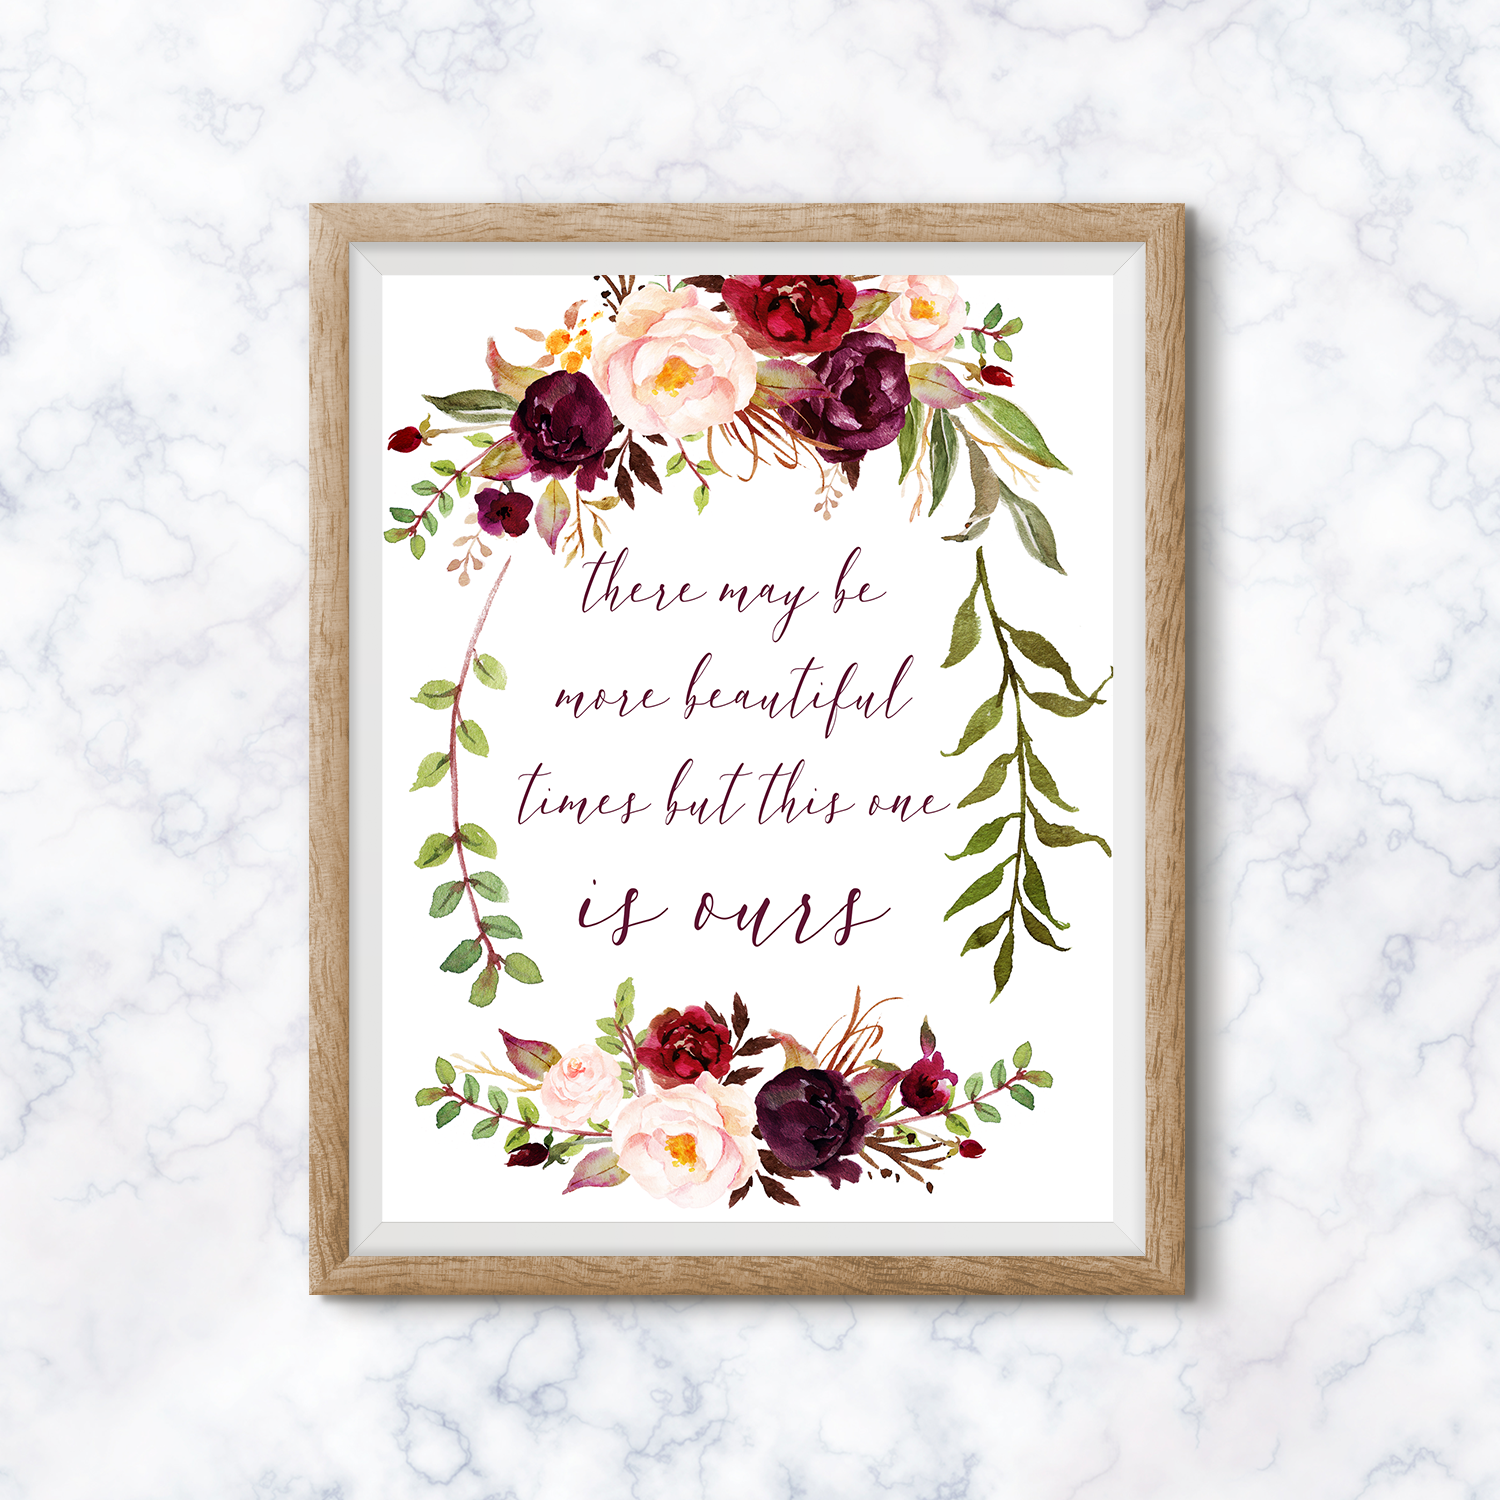 Click the image to shop this print, now available in all sizes. I hope it reminds you to breathe in each moment before it passes.